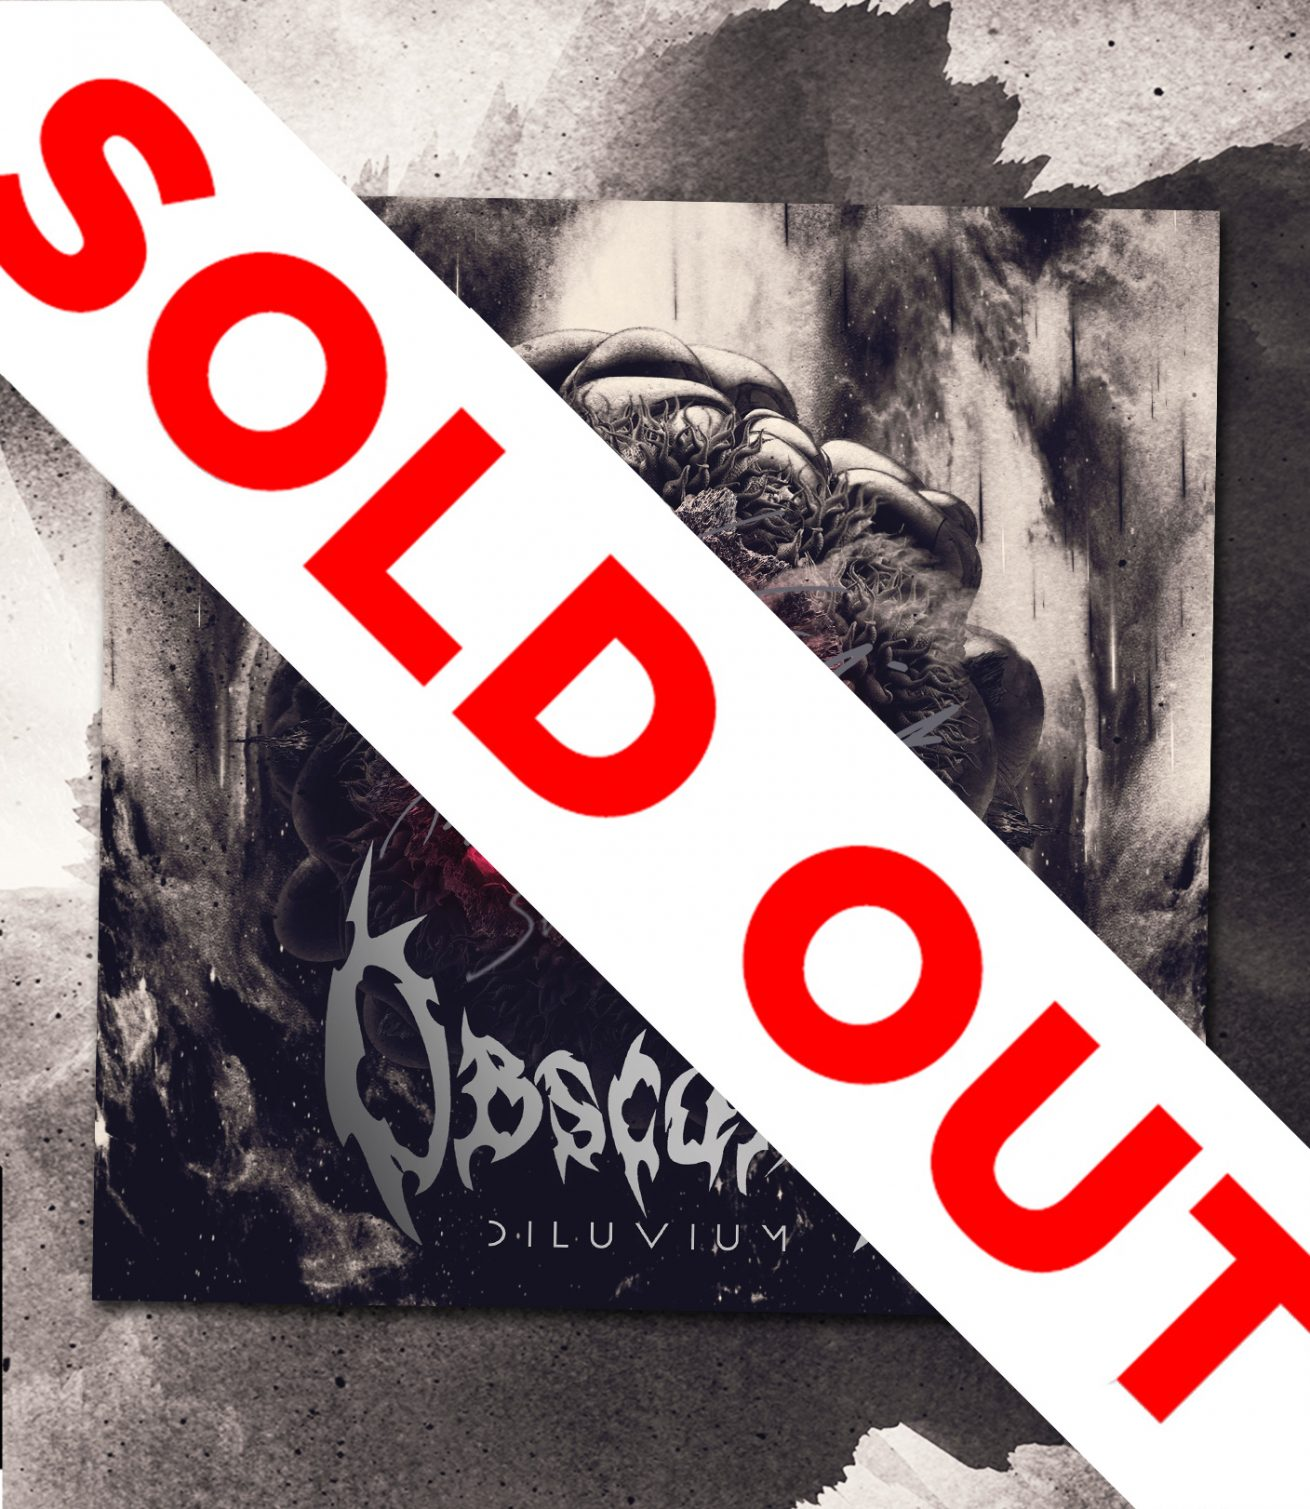 Obscura | Diluvium - signed CDs SOLD OUT